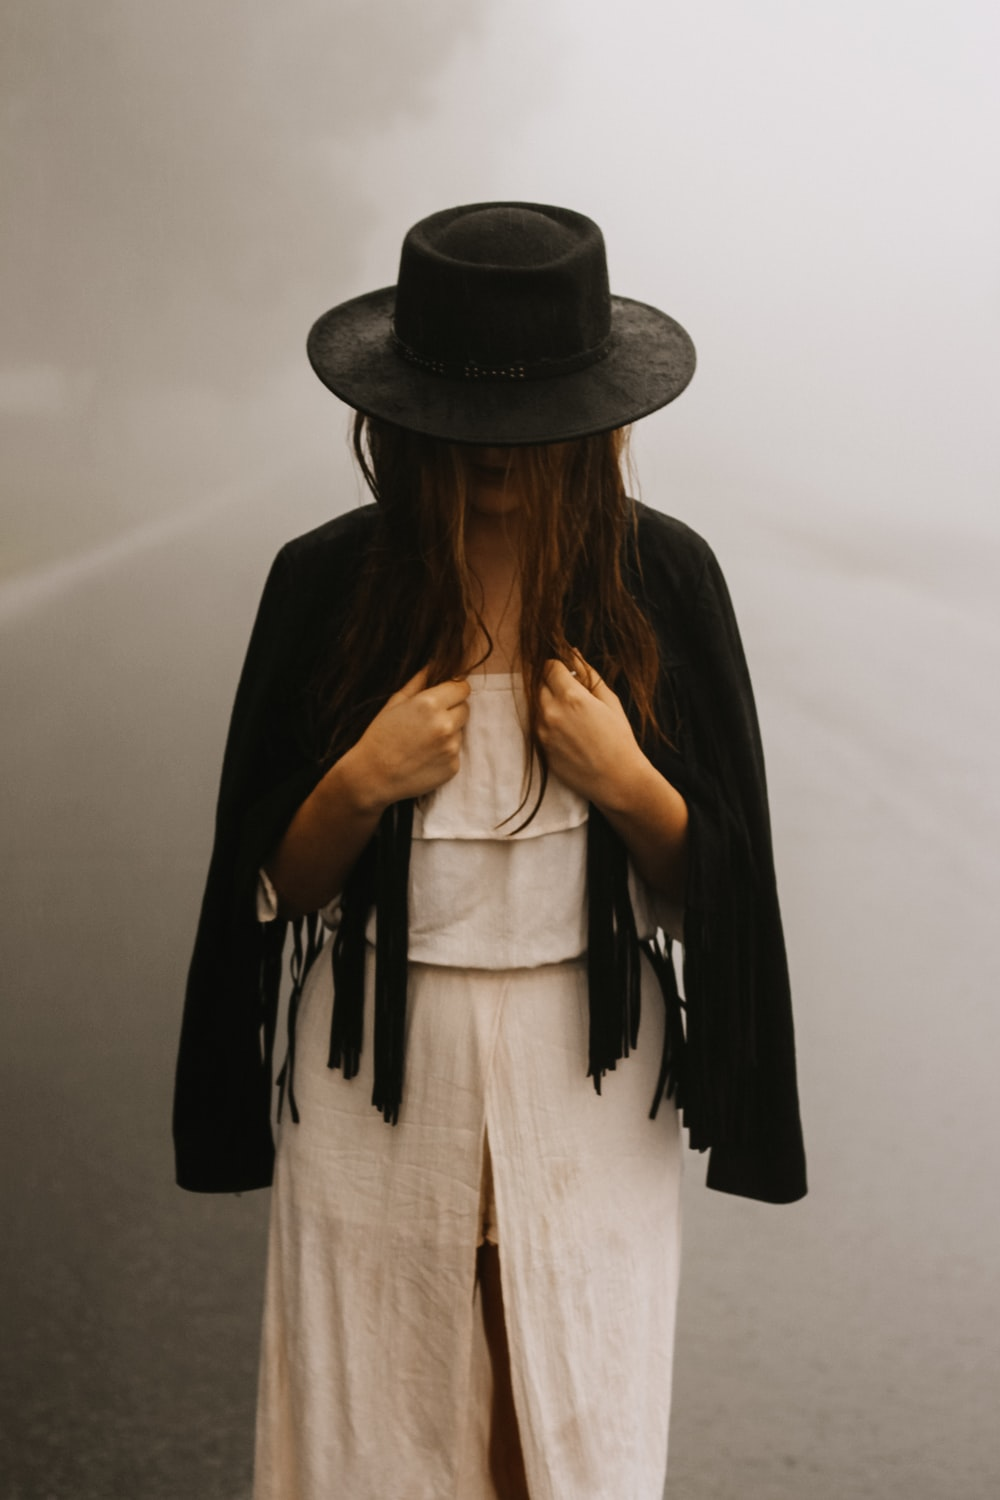 woman wearing brown dress and black hat